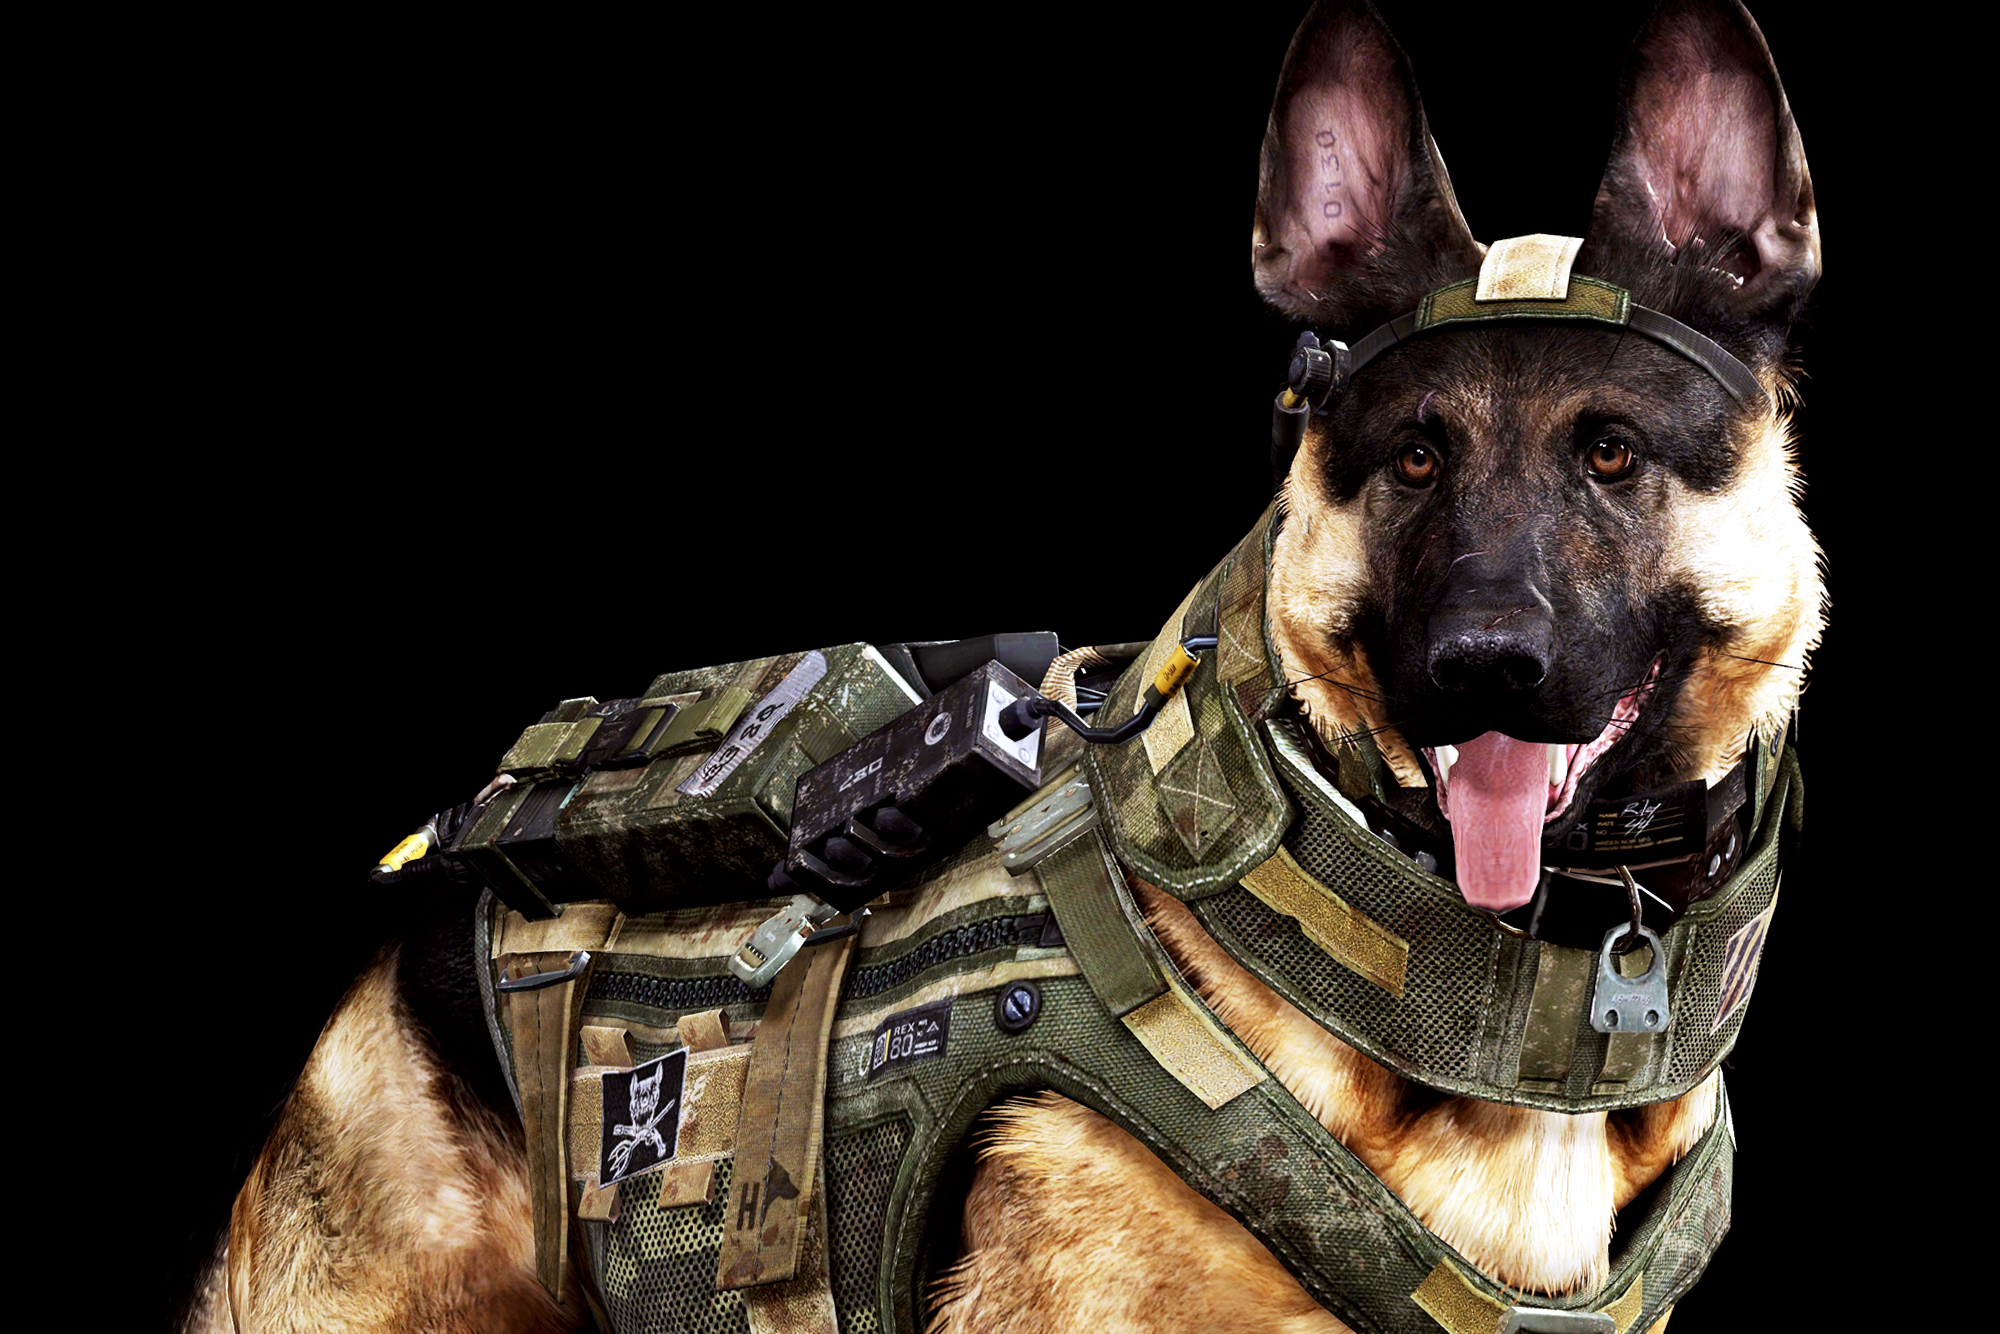 Dog Army Awesome Wallpapers HD 2000x1334